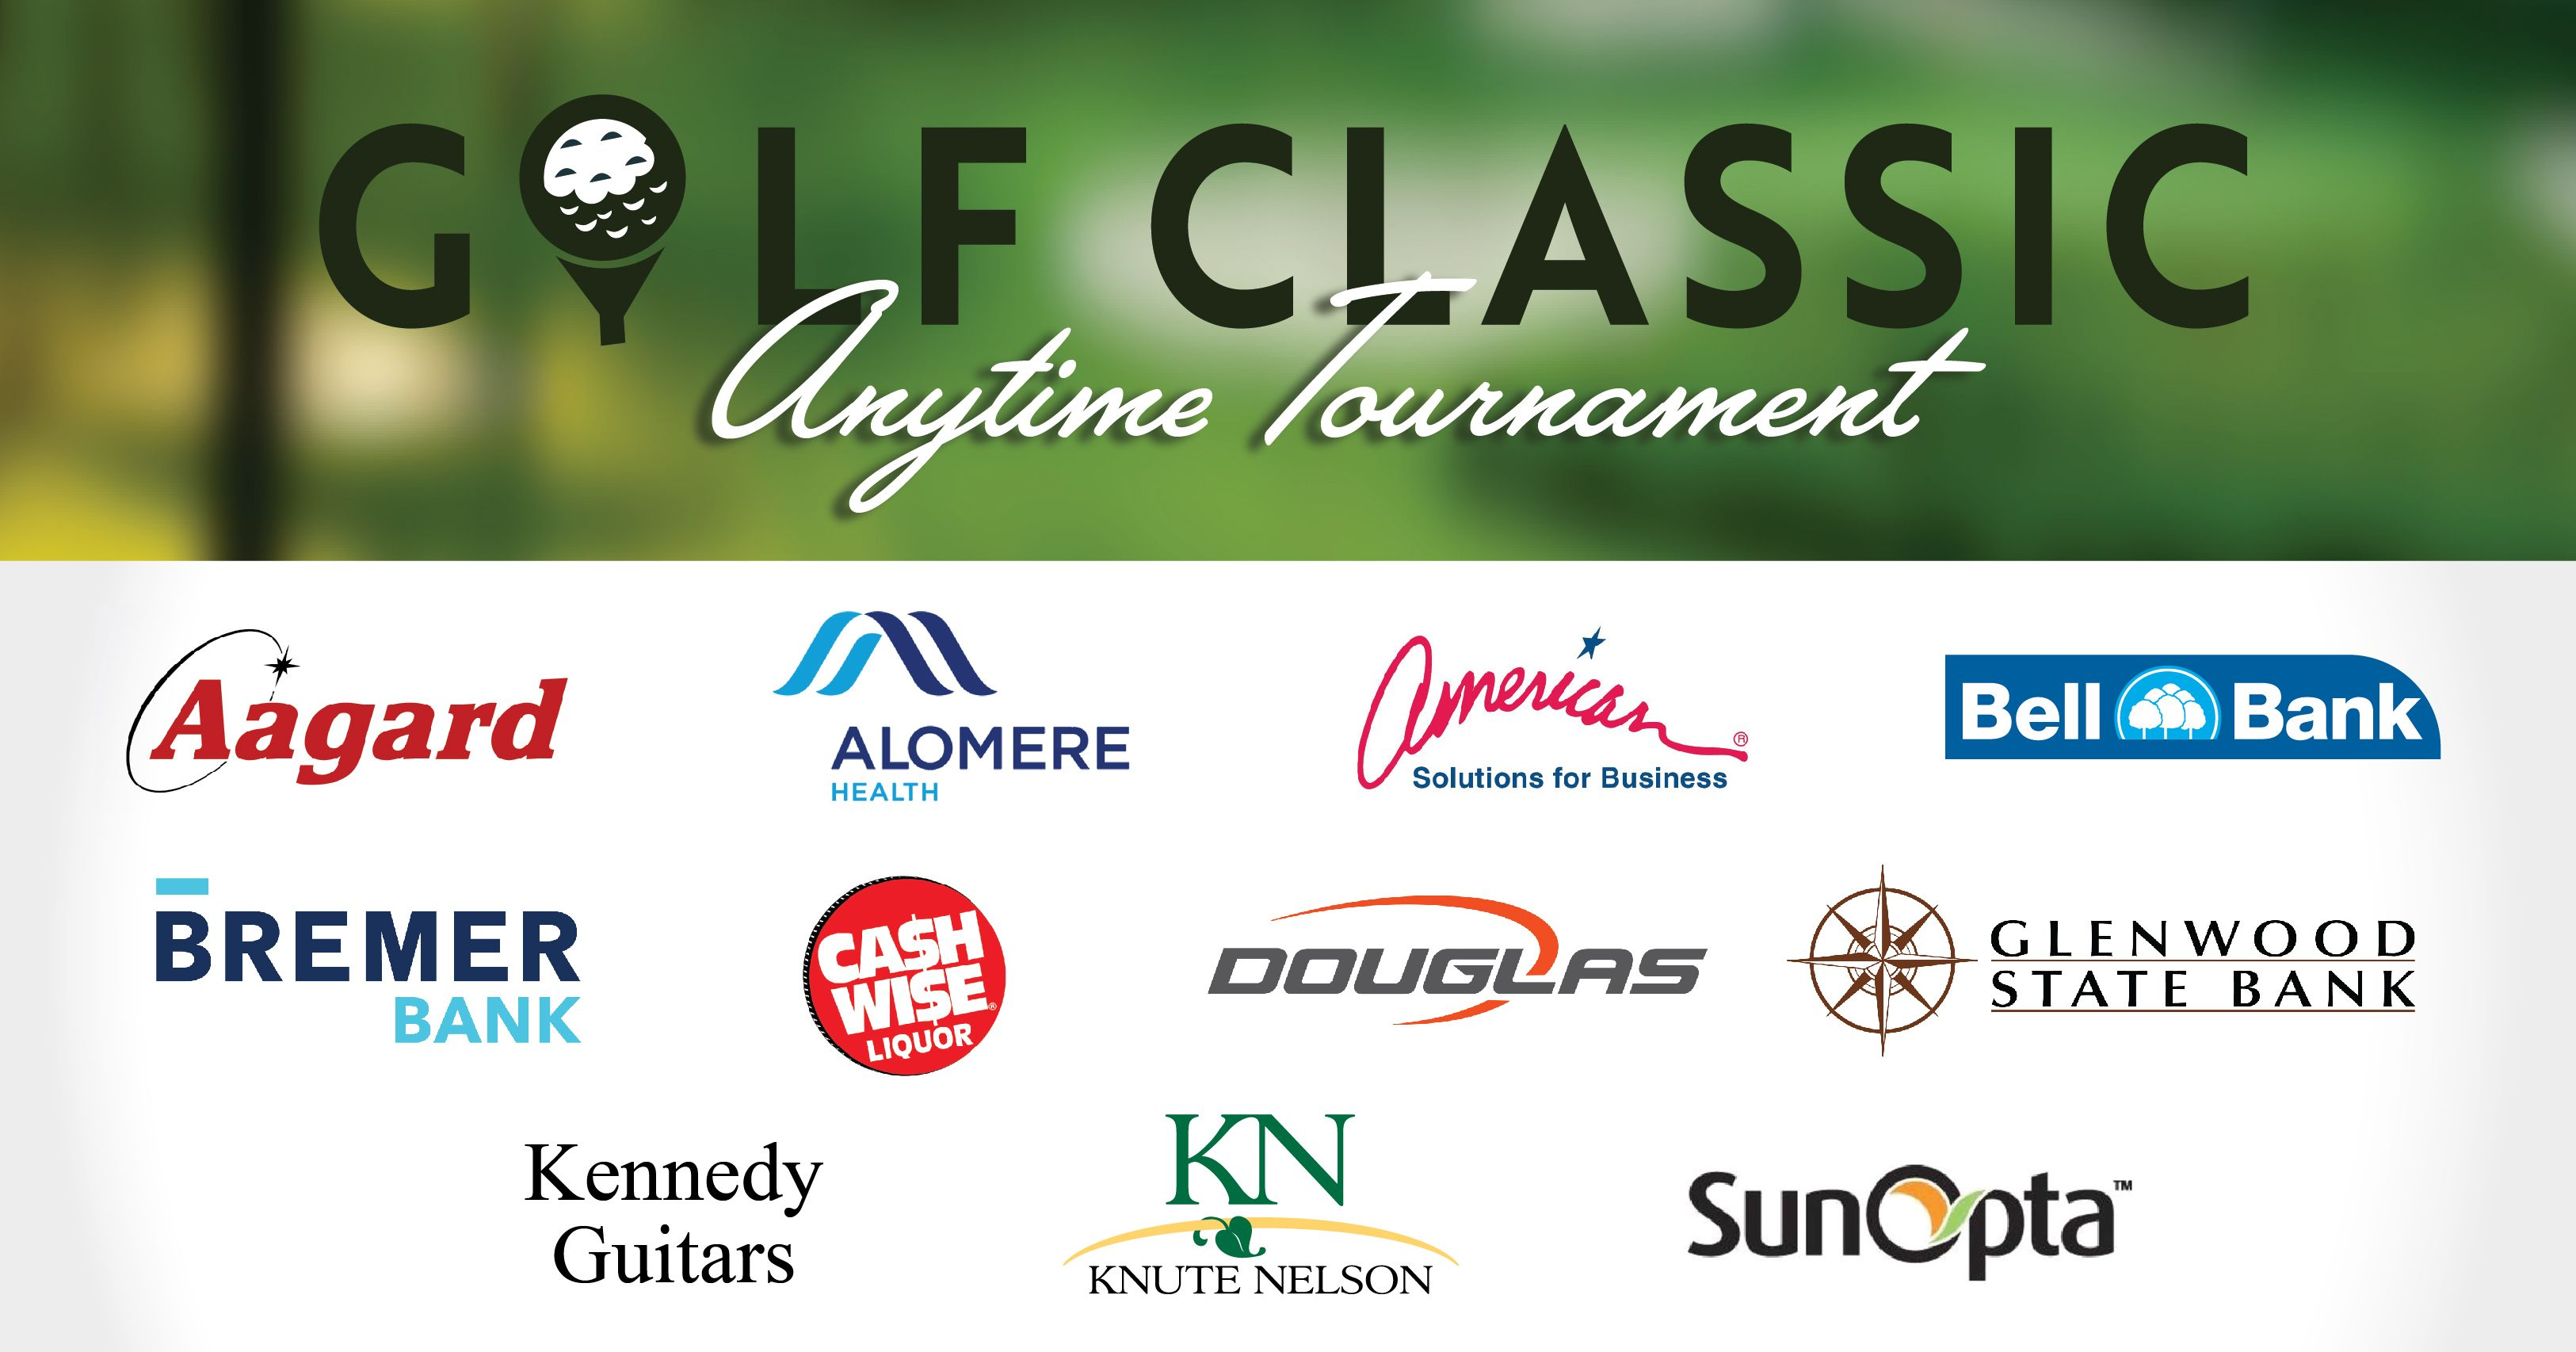 The Golf Classic - Anytime Tournament!